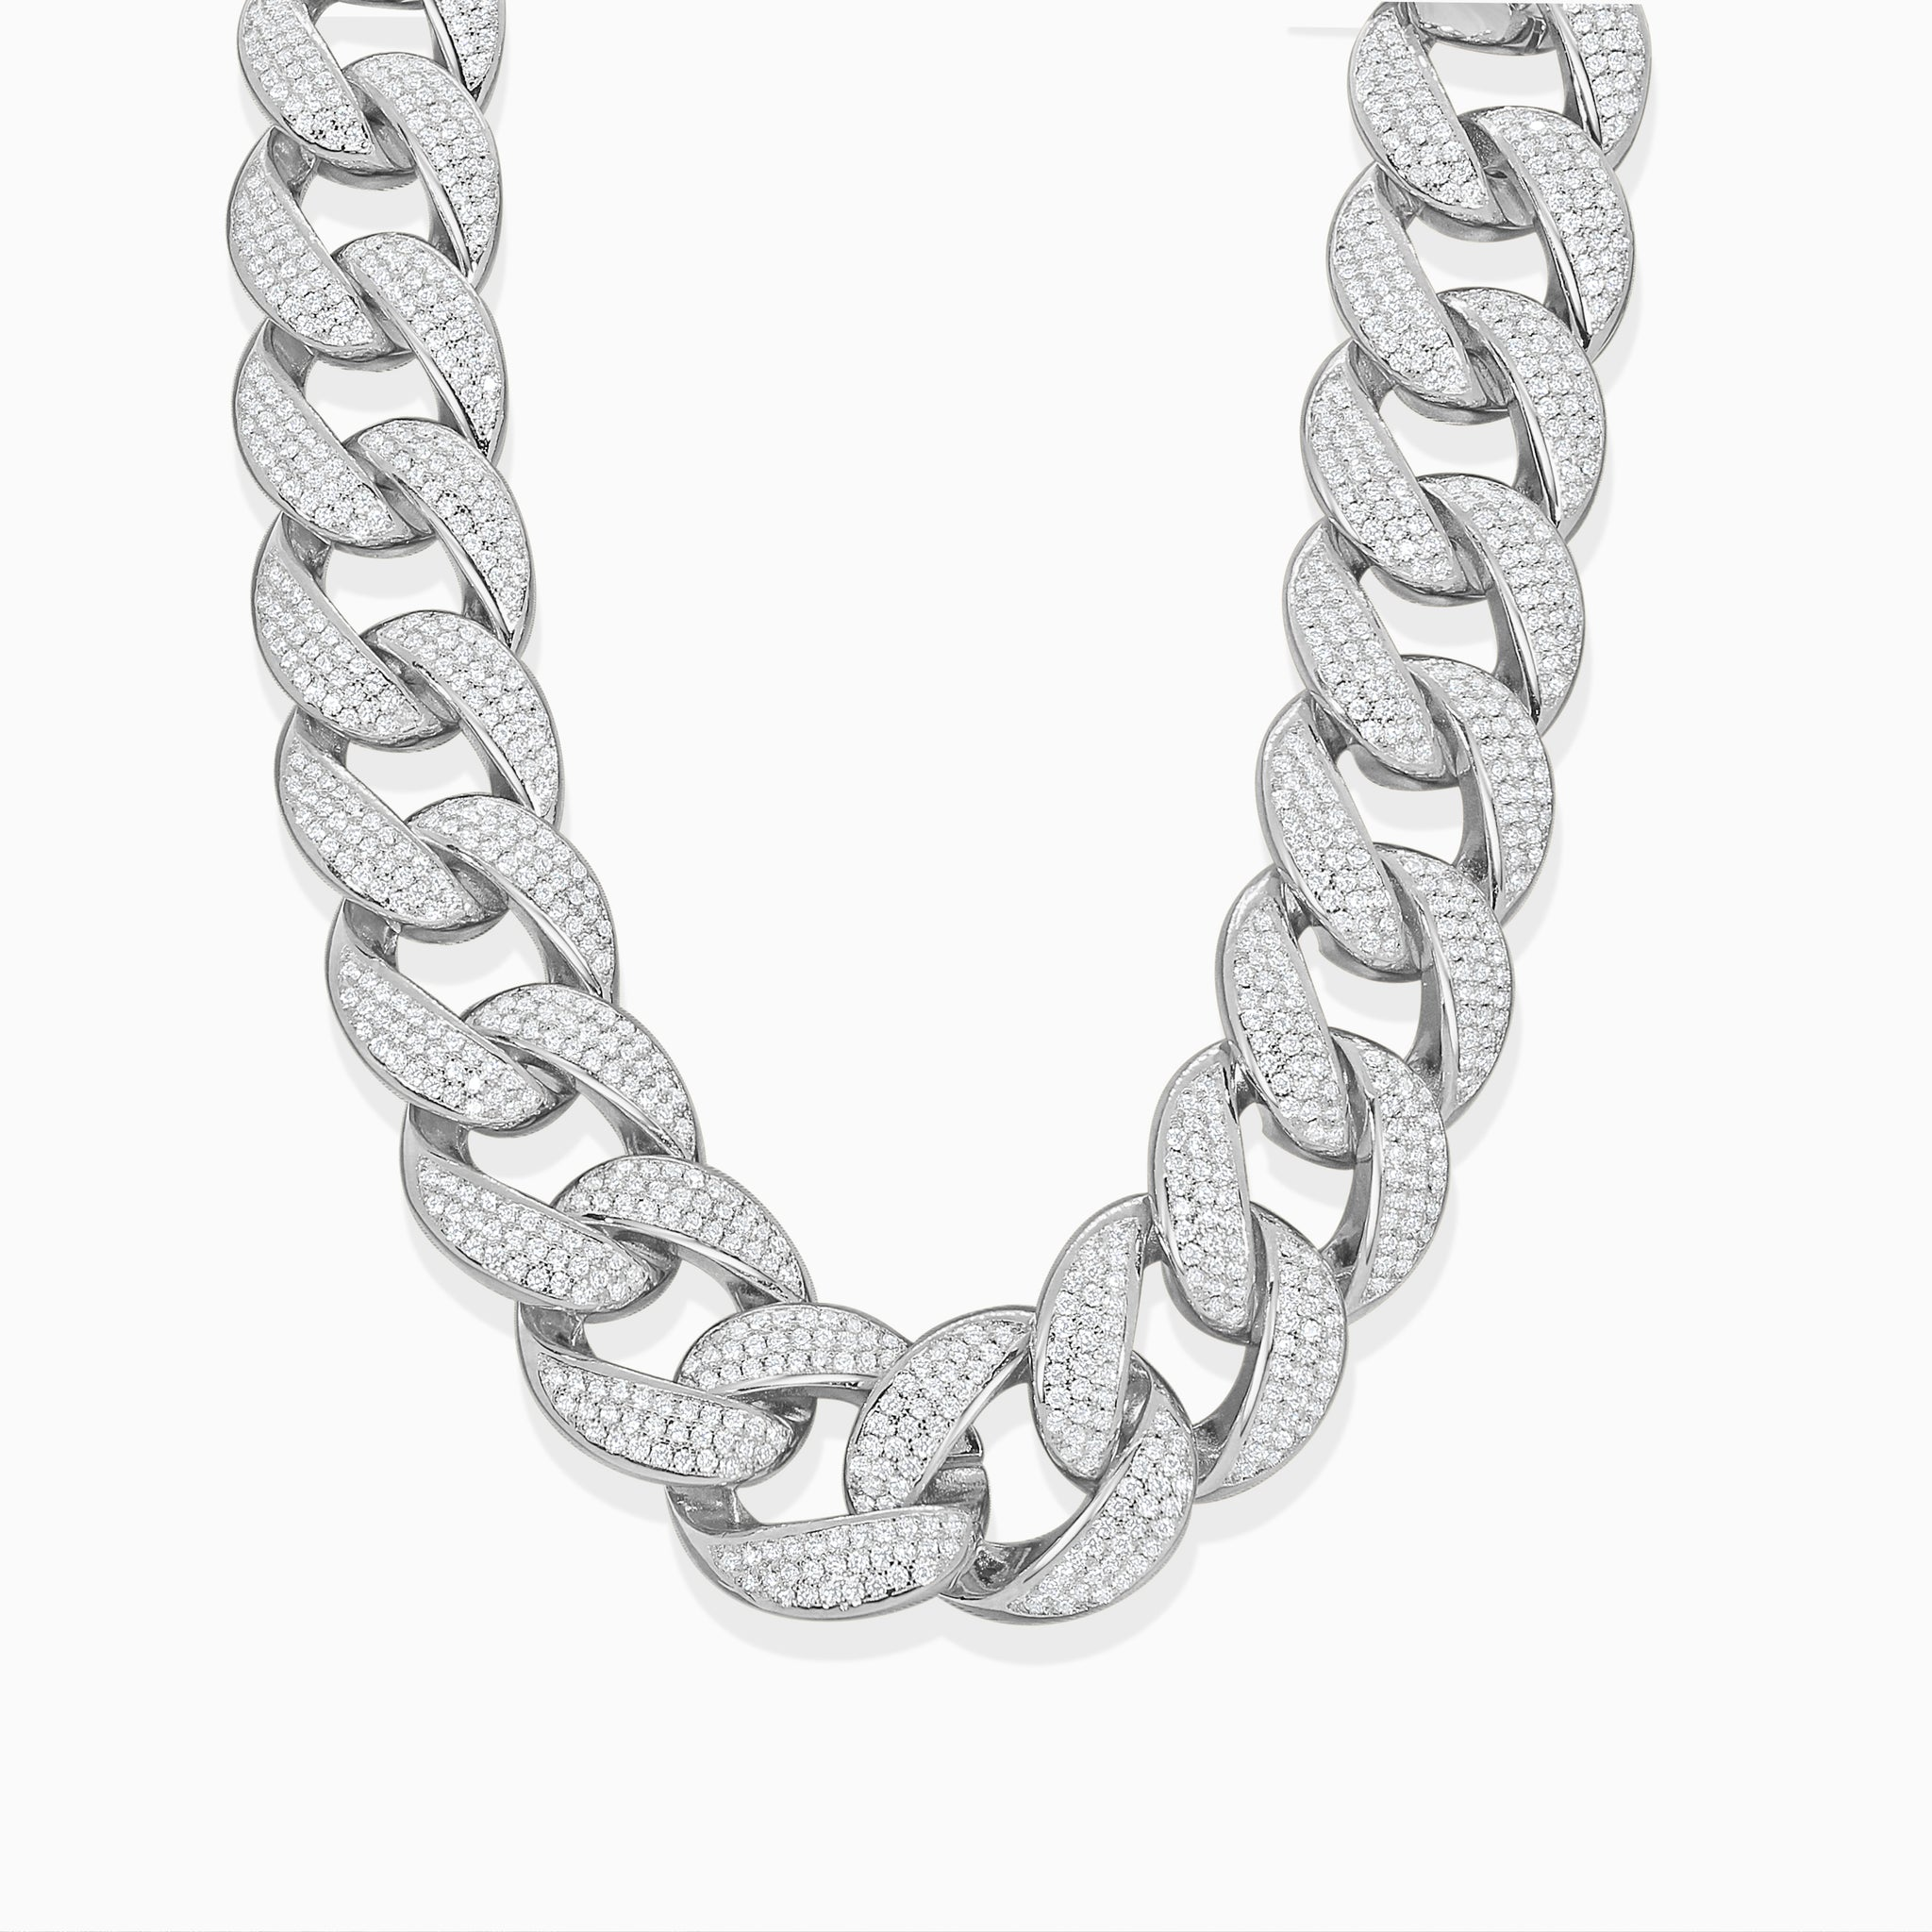 Cuban Choker Necklace - Silver